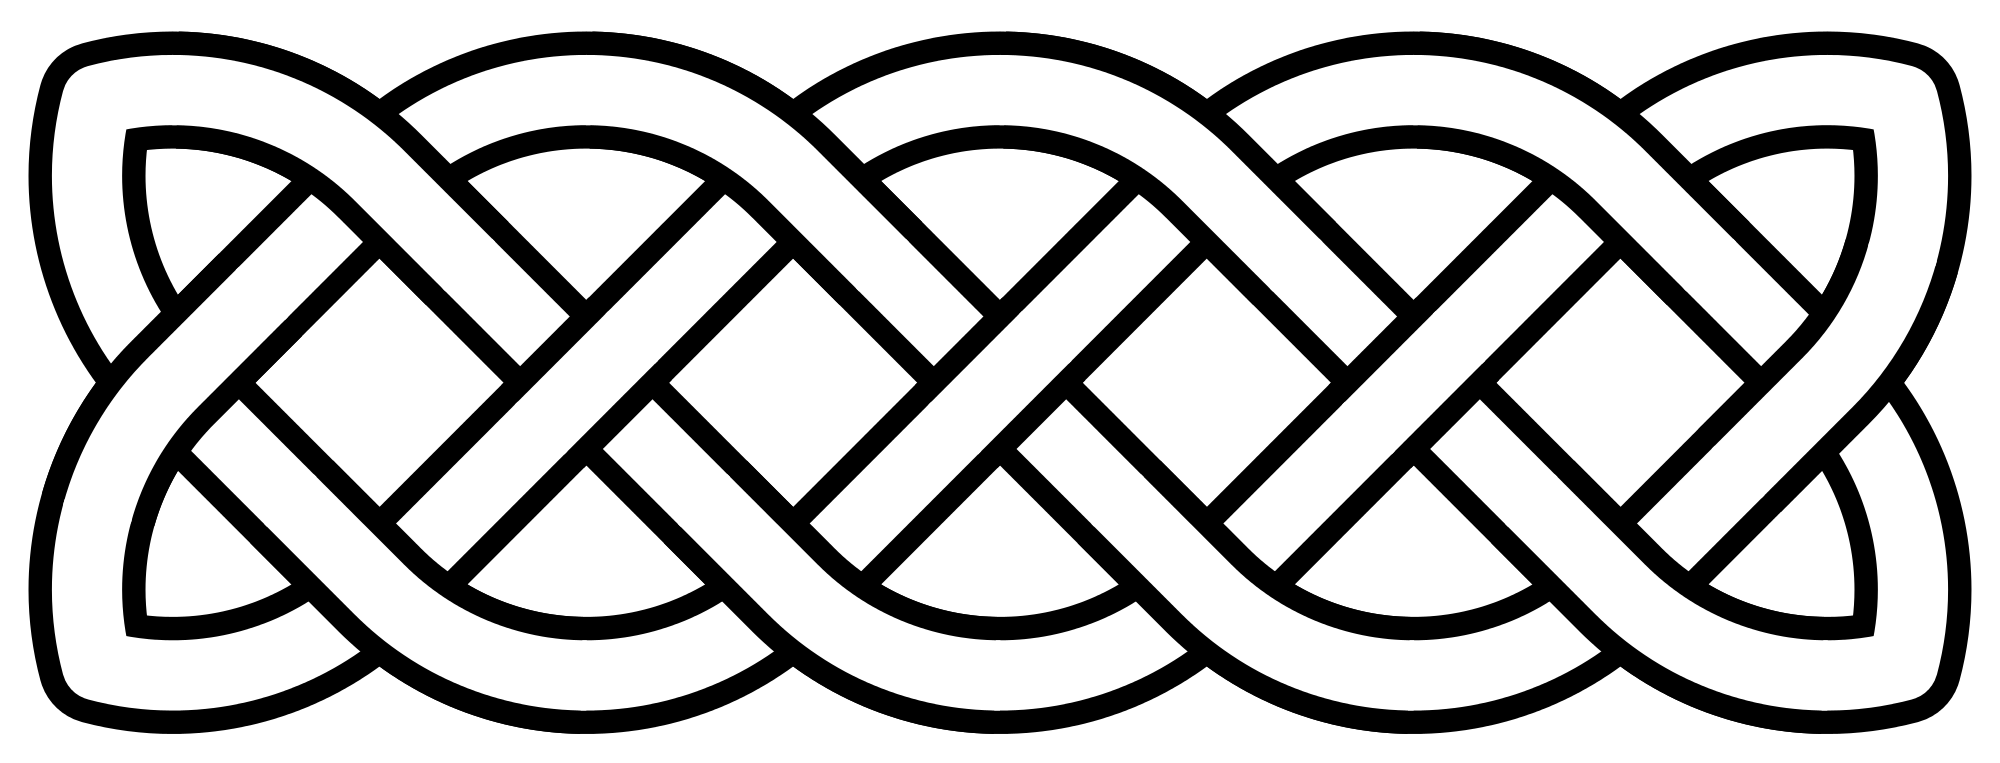 clipart black and white File knot basic linear. Celtic clipart vector.